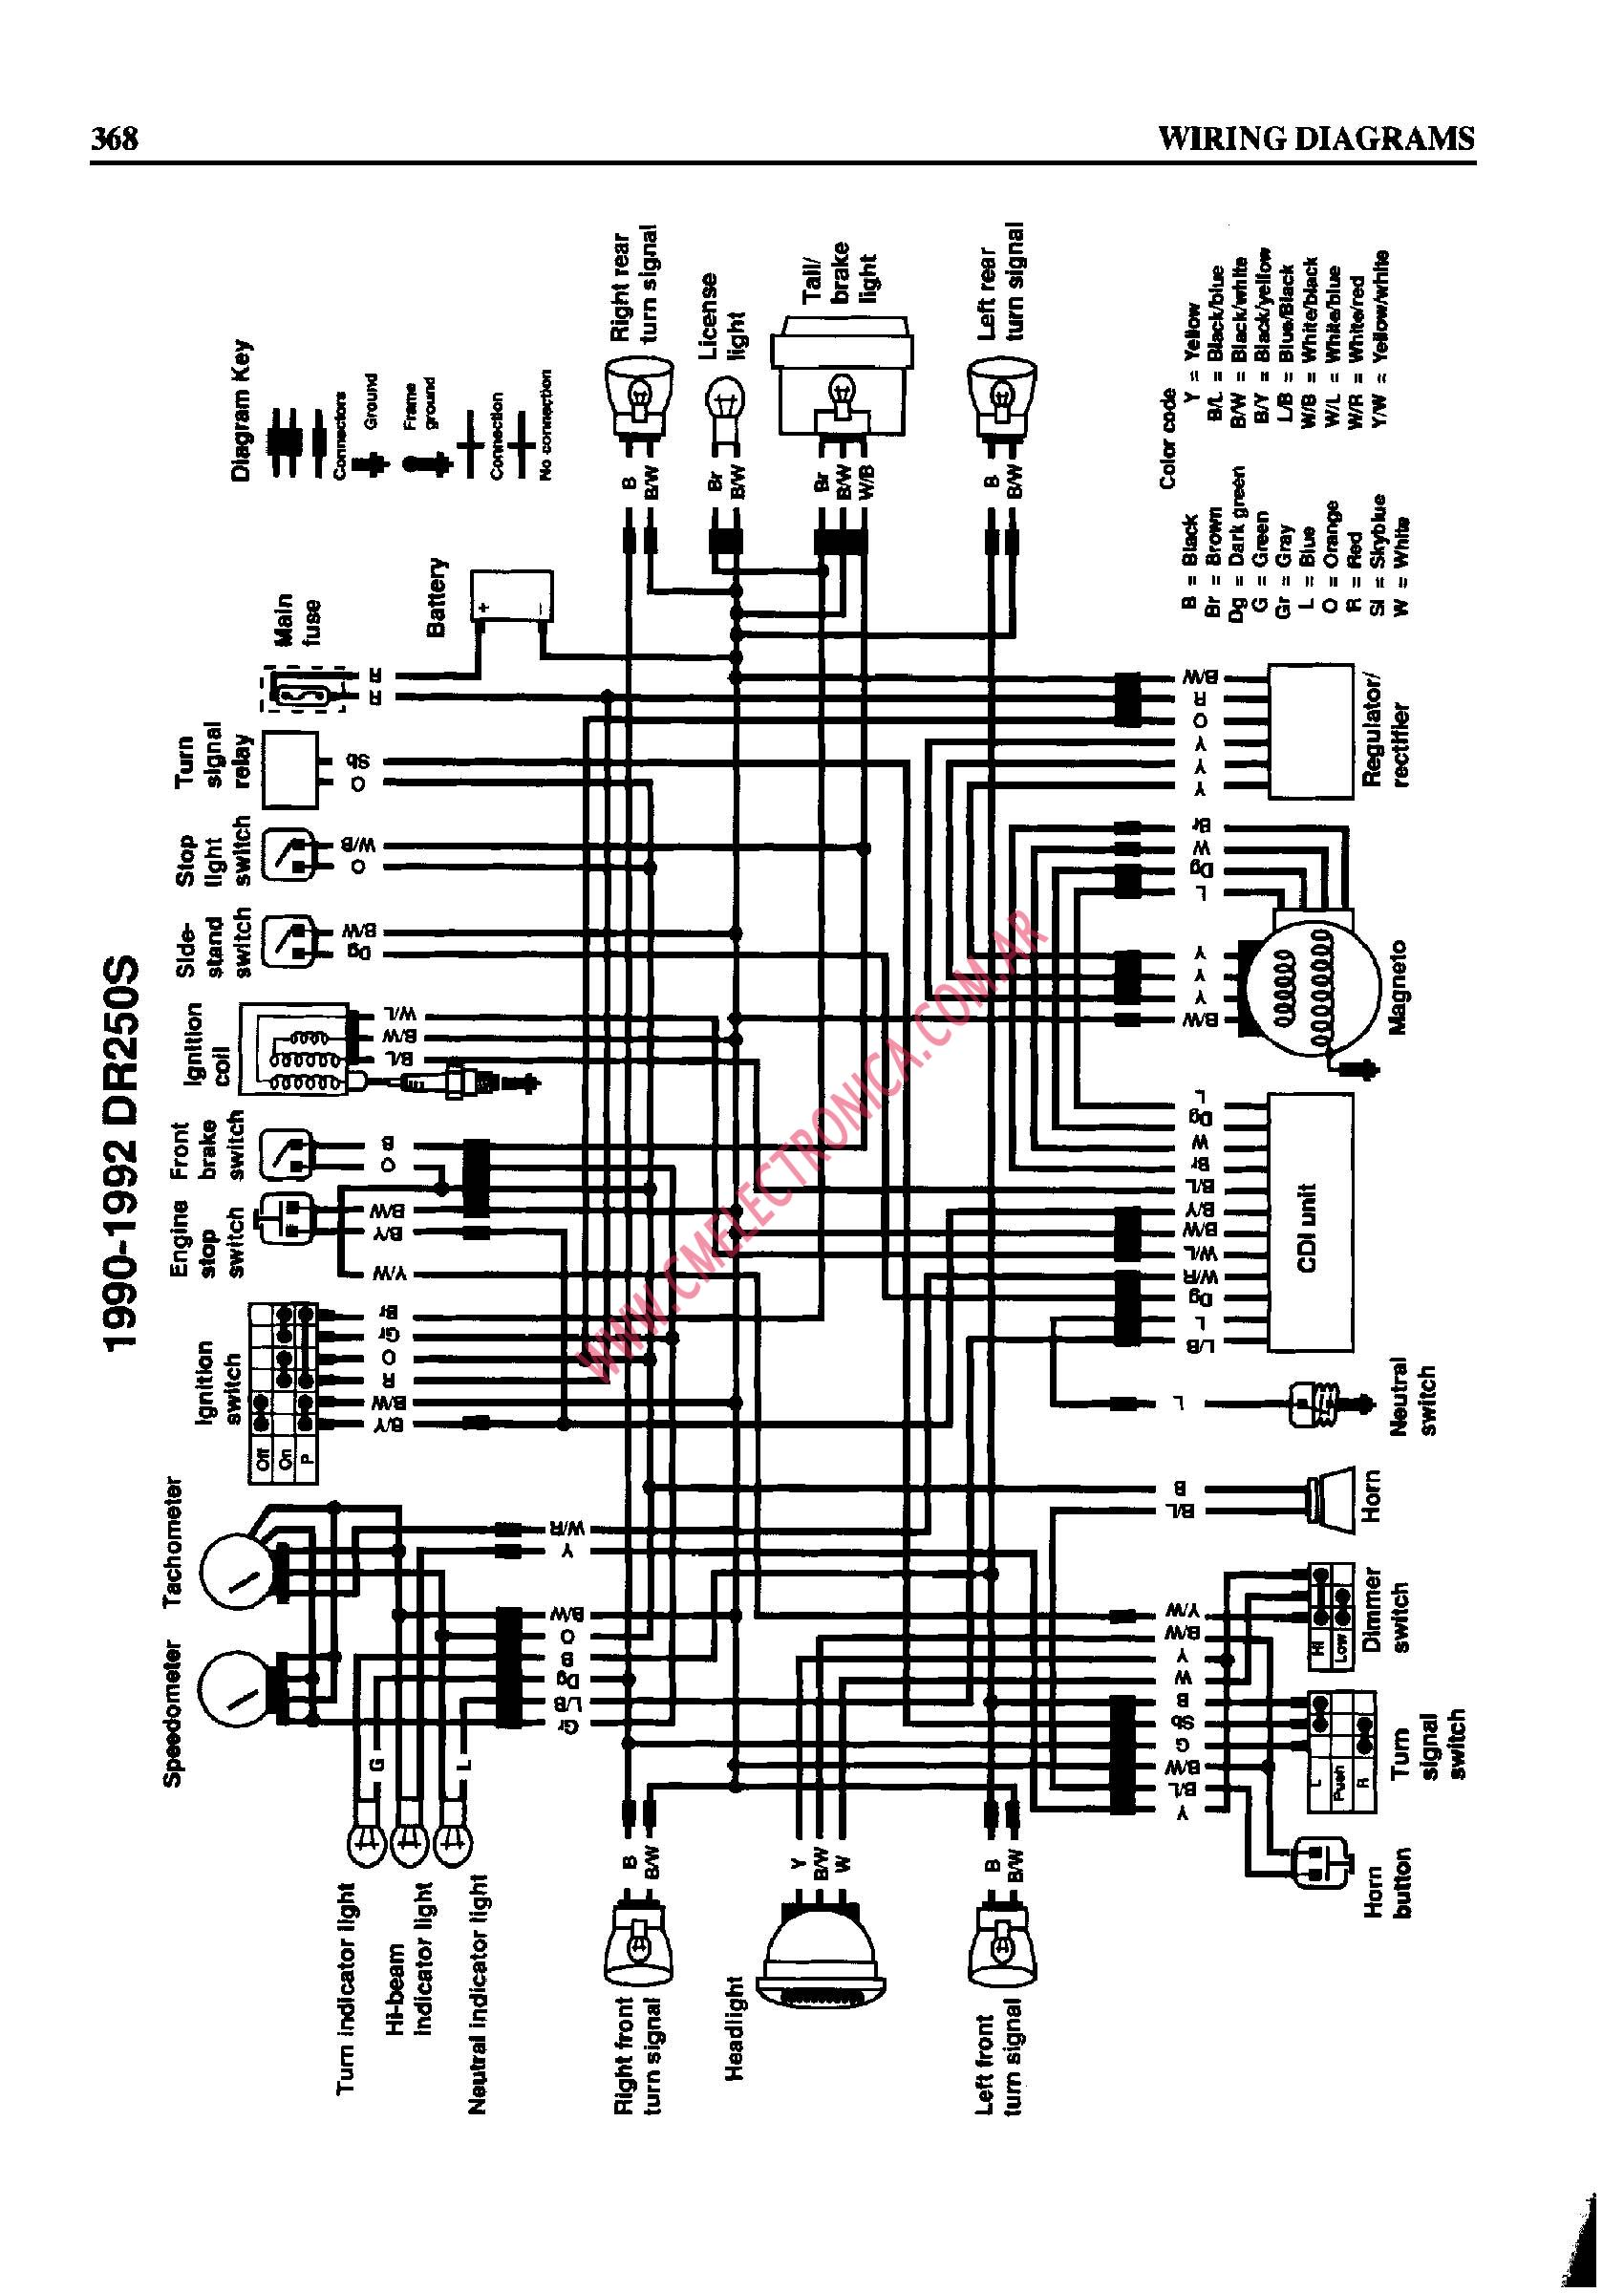 hight resolution of dr250 wiring diagram wiring diagrams posts dr250 wiring diagram